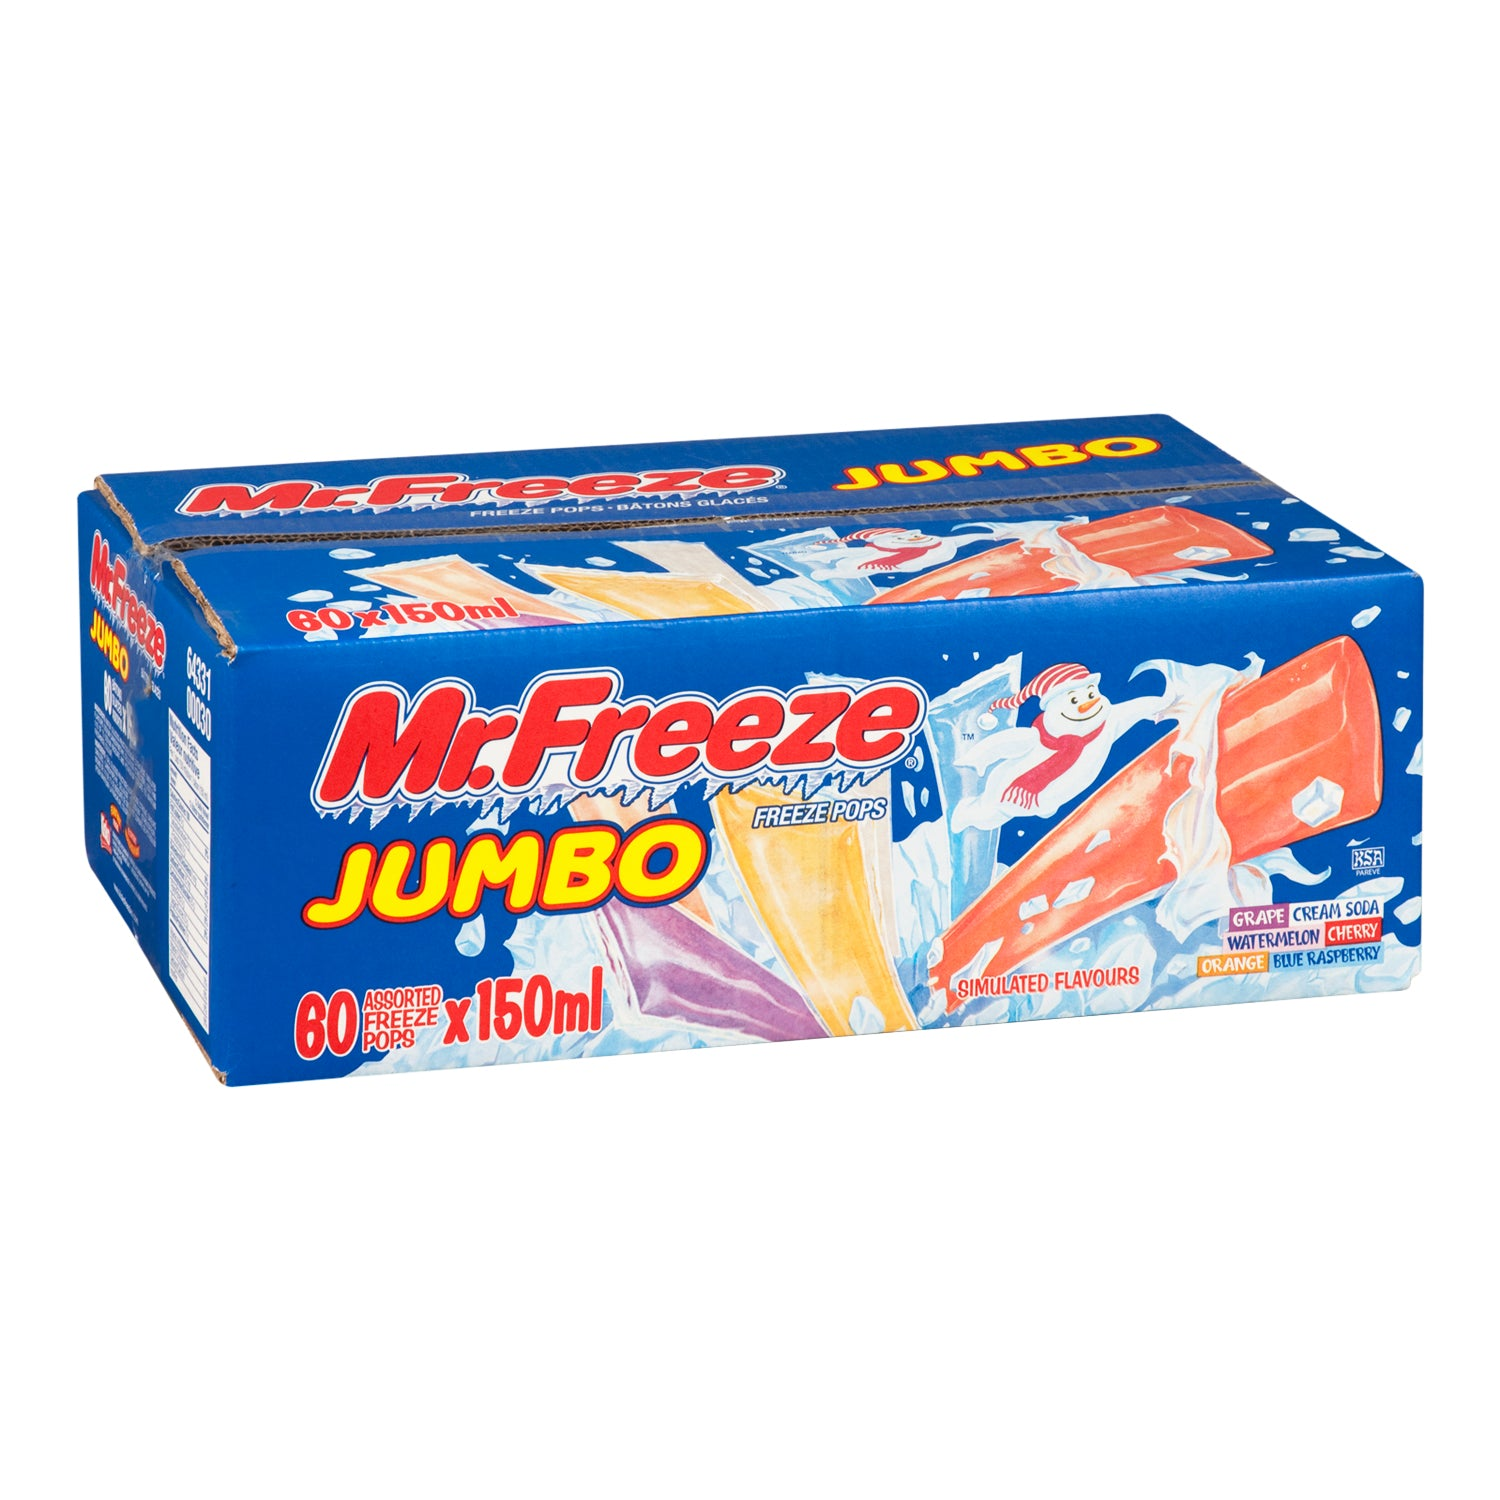 Mr Freeze Assorted Jumbo Popsicles 150 ml - 60 Pack [$0.33/each]